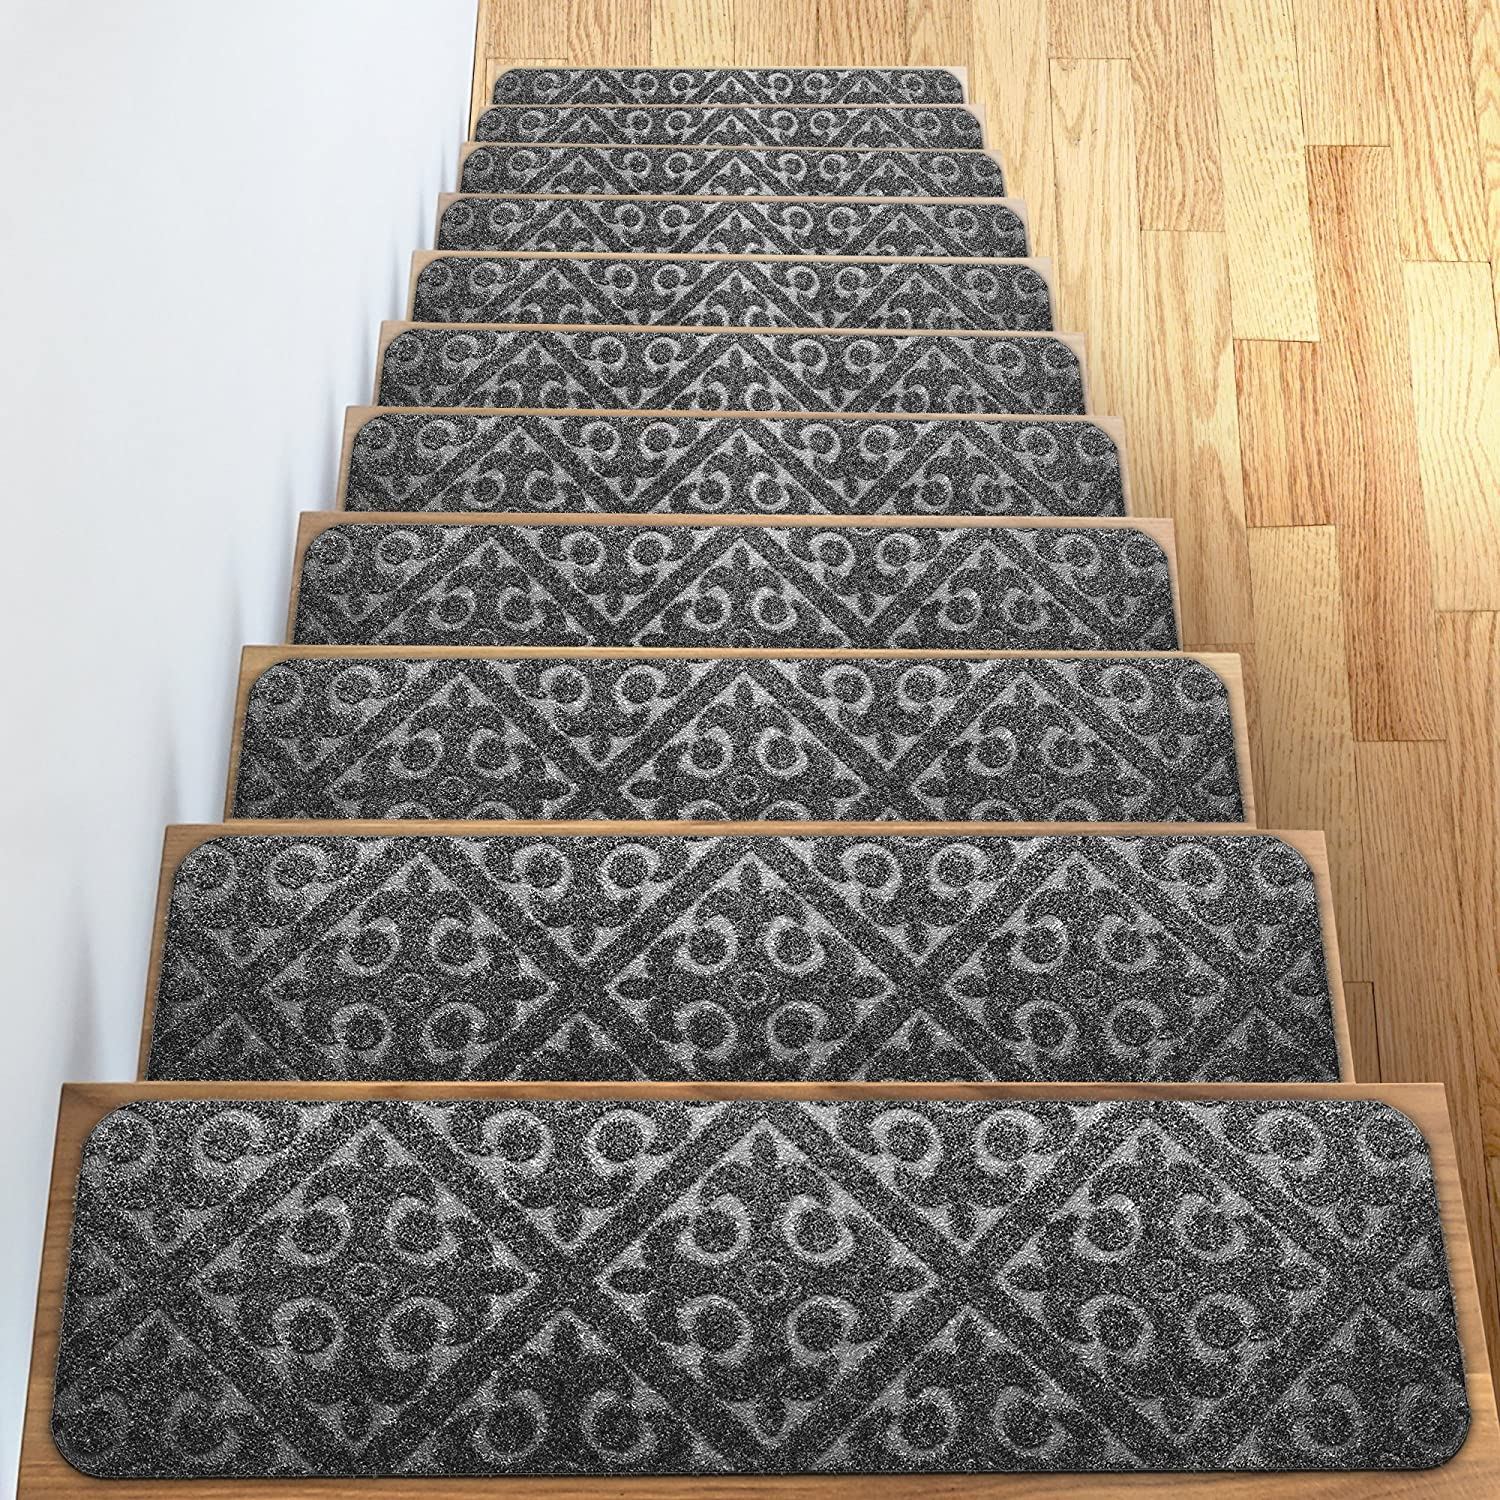 Aucuda Comme Rug Stair Treads with Rubber Backing,Non-Slip,Indoor Outdoor Step treads,Set of 6,Grey Stone Pattern,8.5 x 30